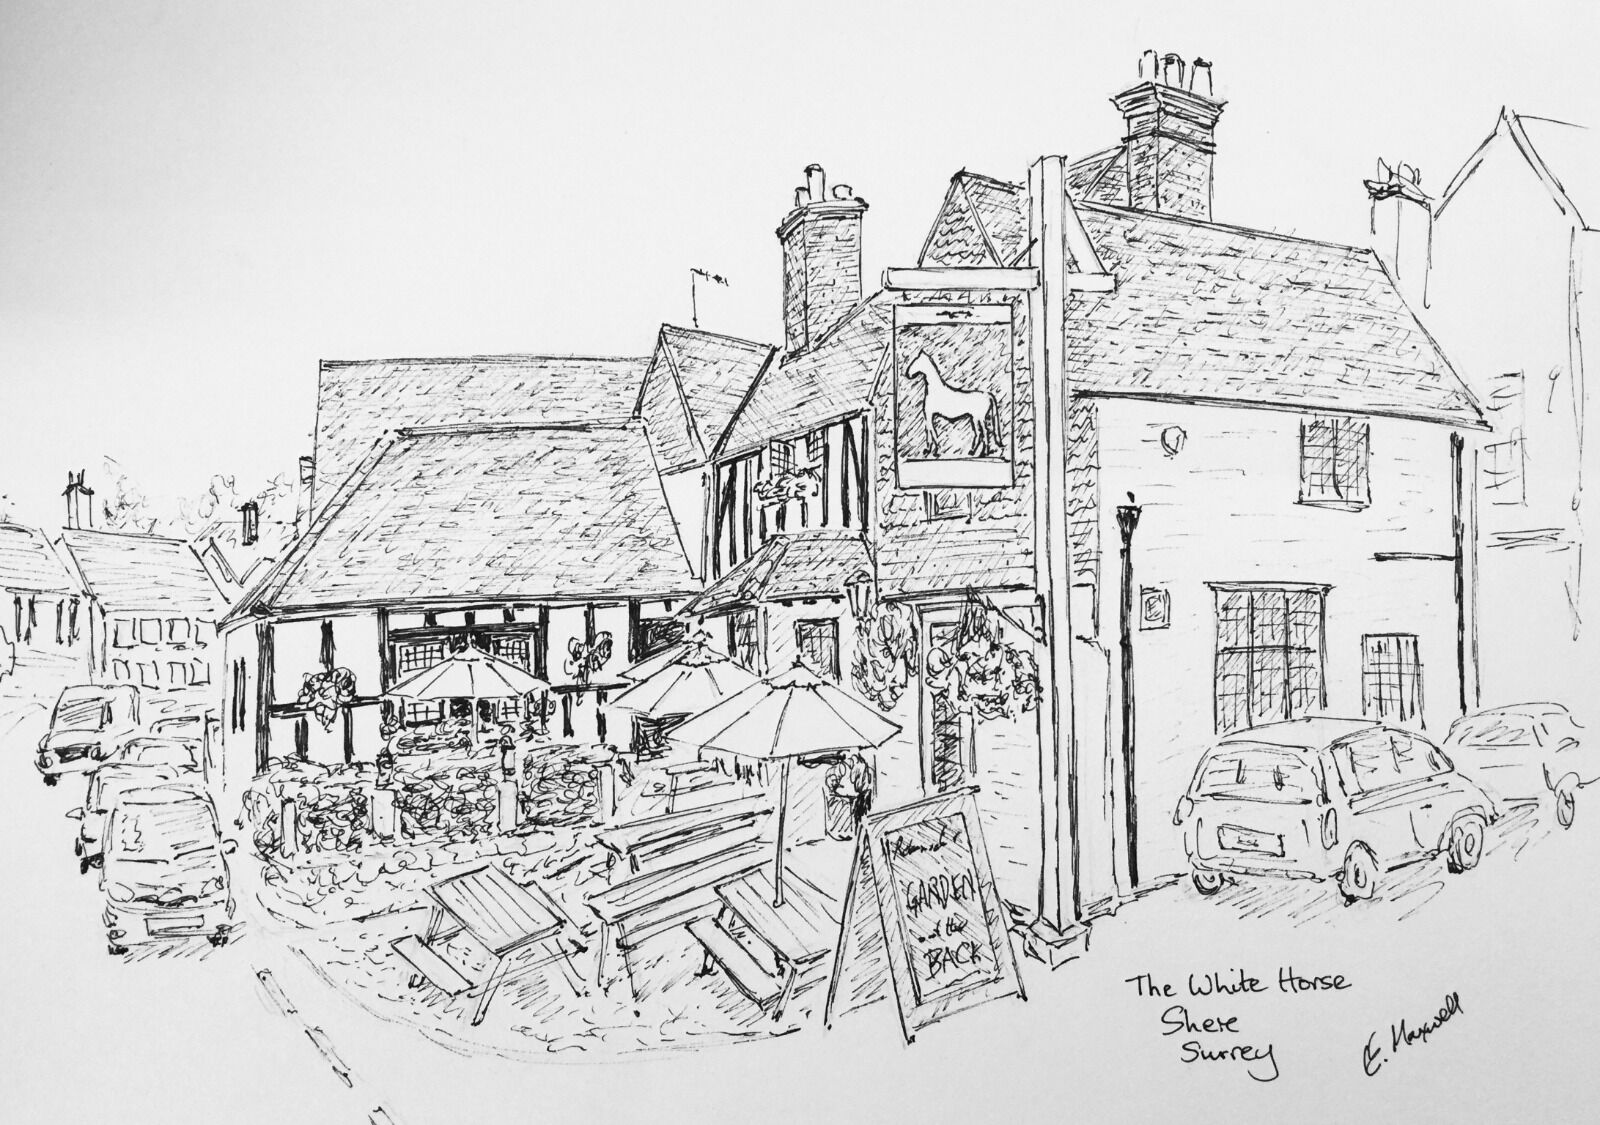 The White Horse, Shere, Surrey